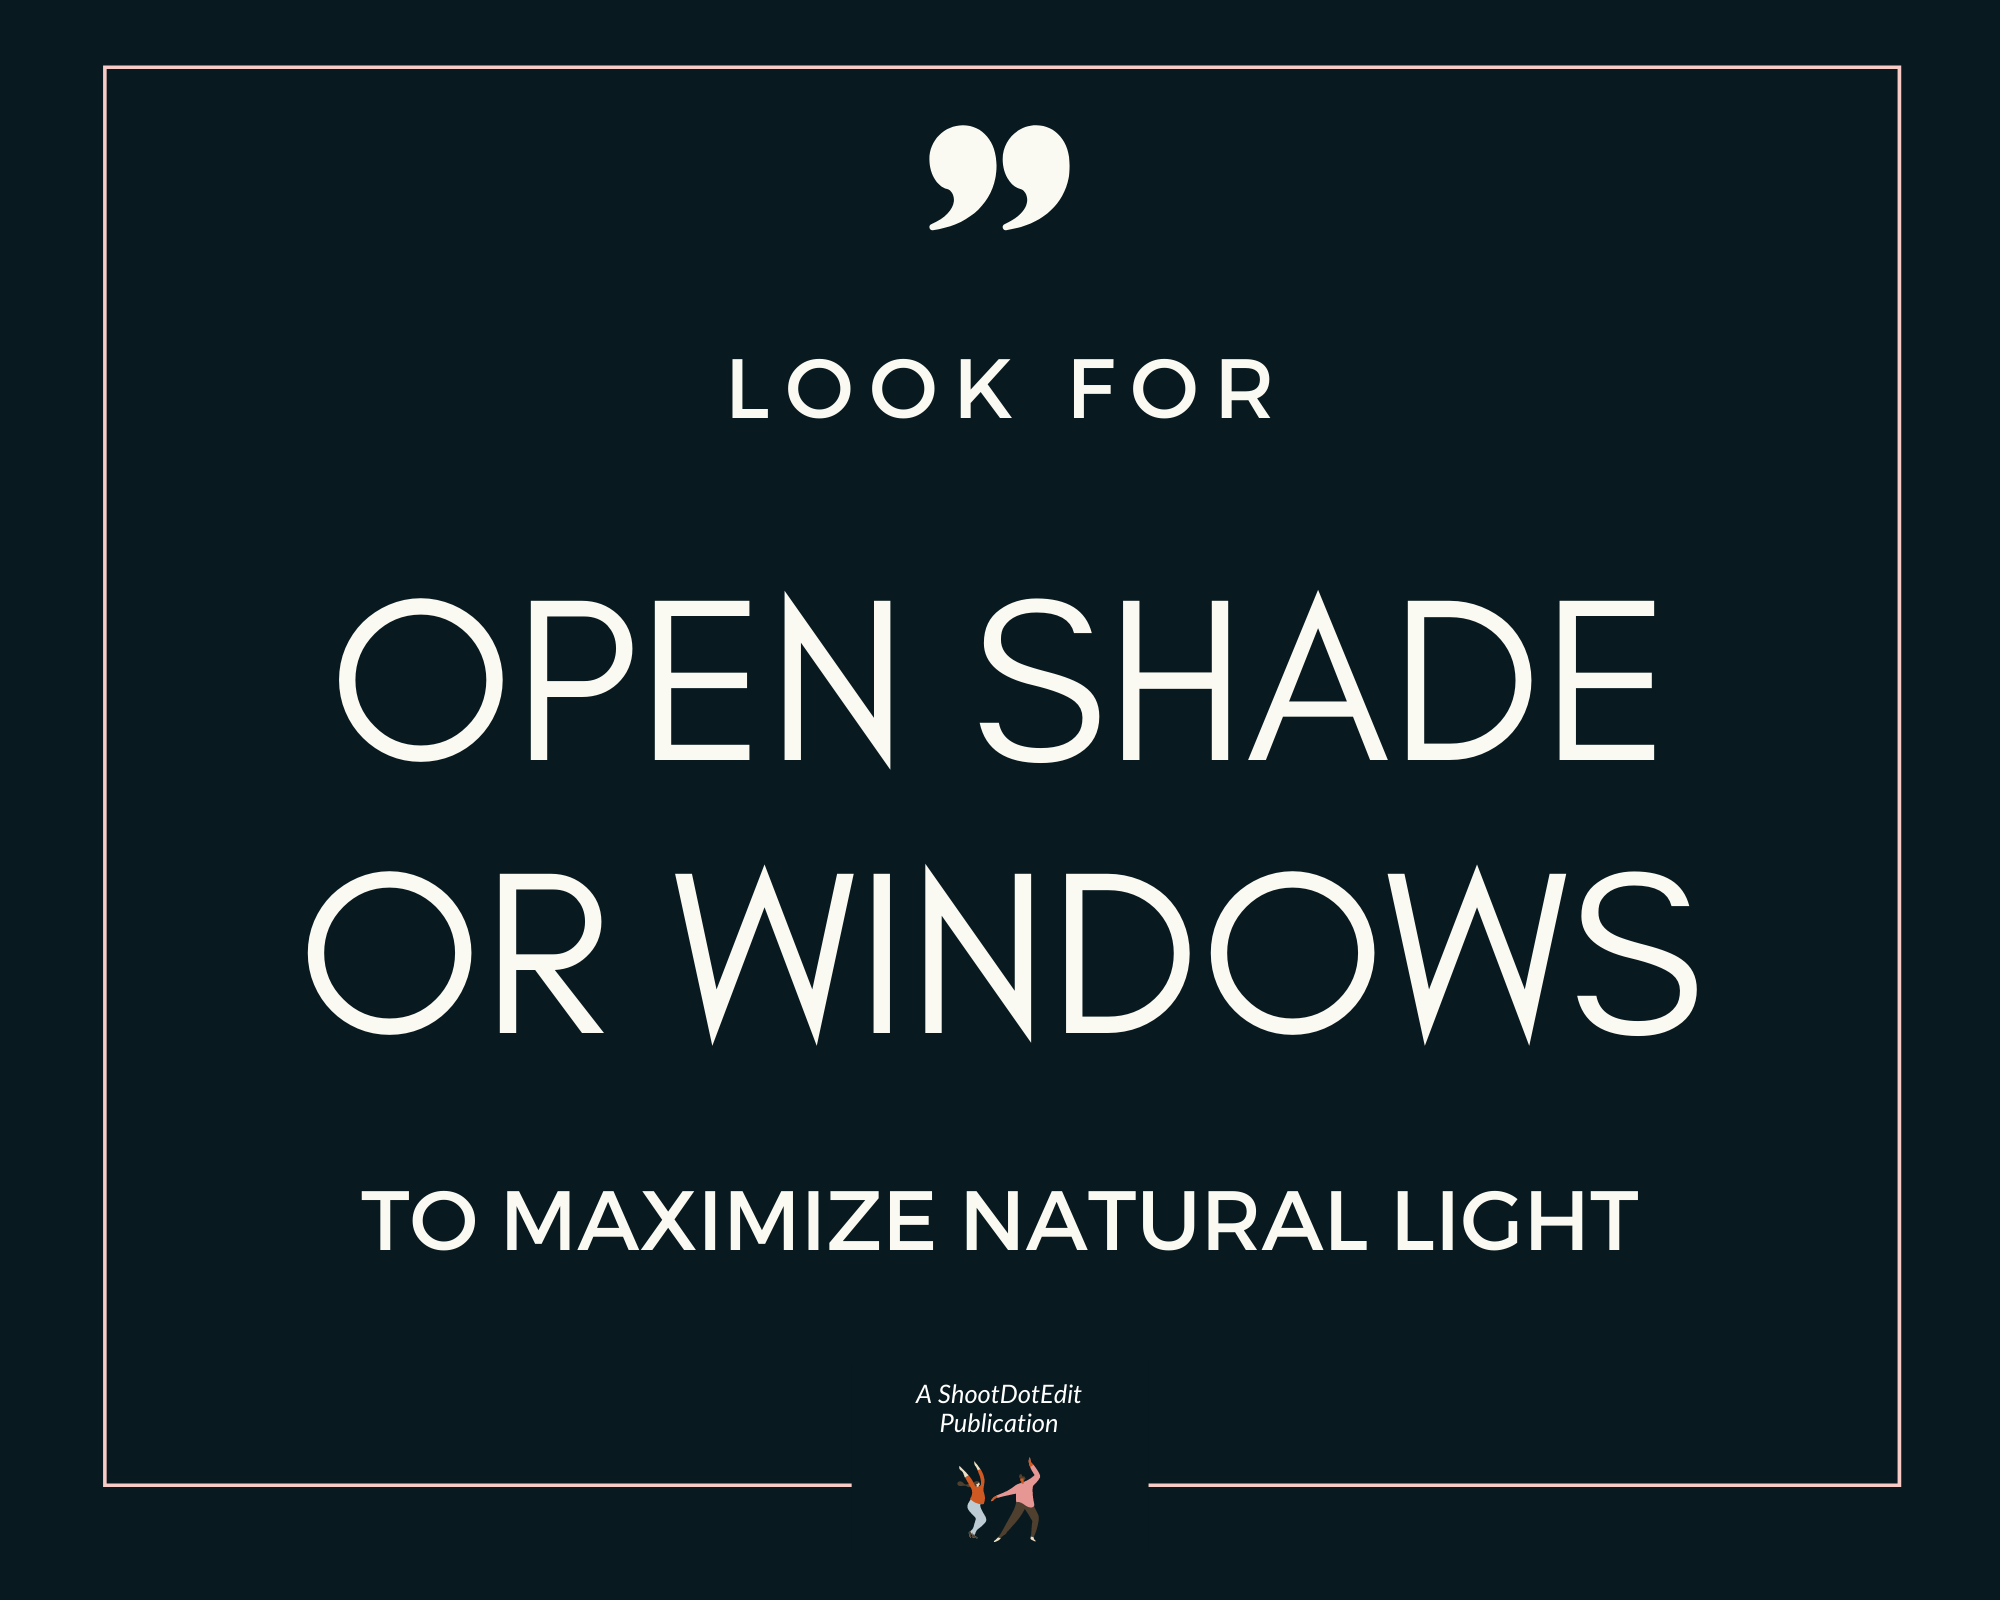 Infographic stating look for open shade or windows to maximize natural light